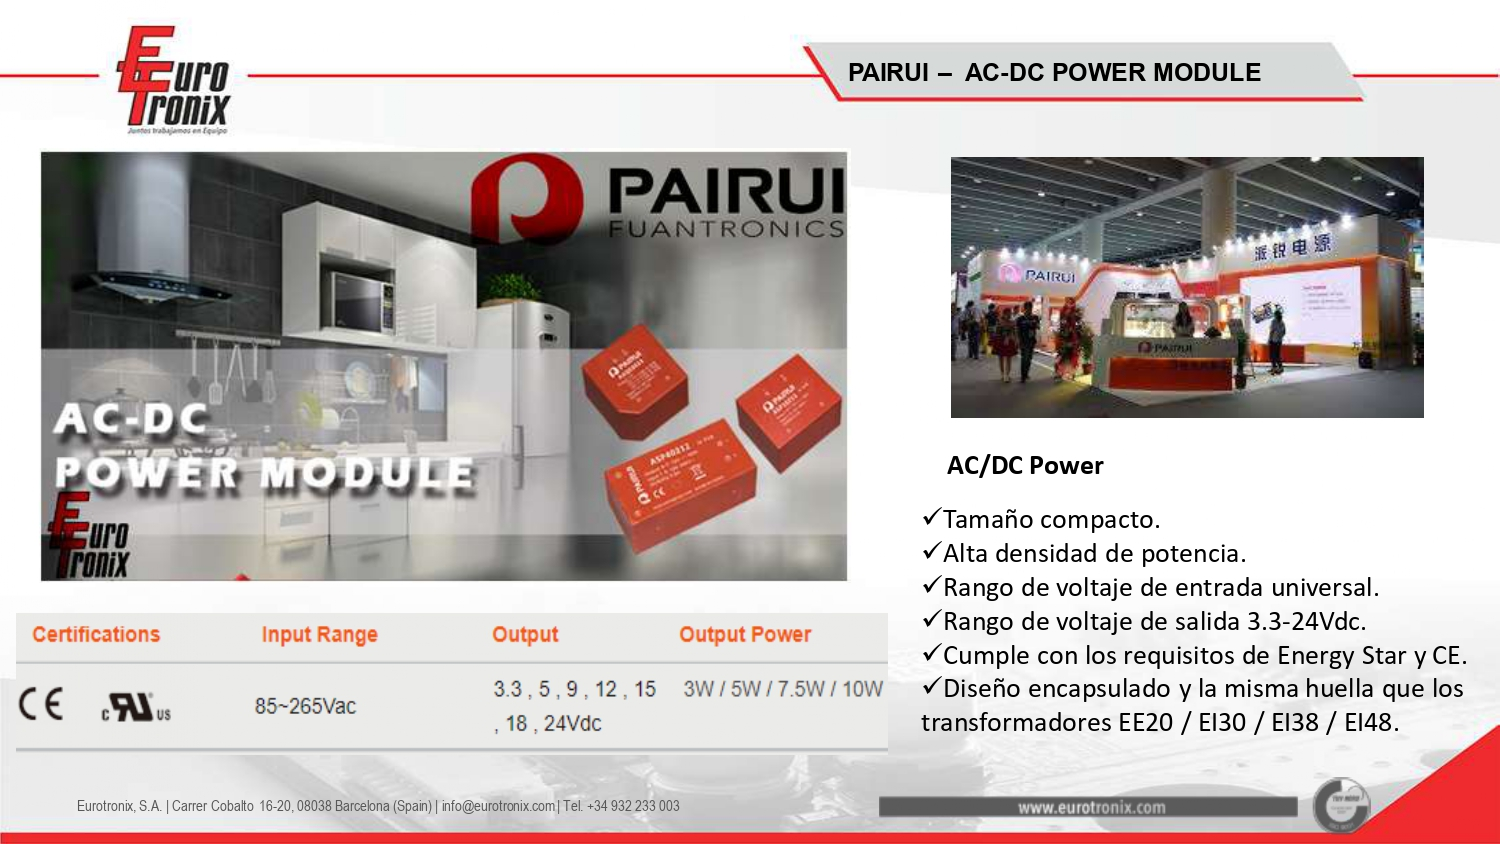 PAIRUI - AC-DC MODULES